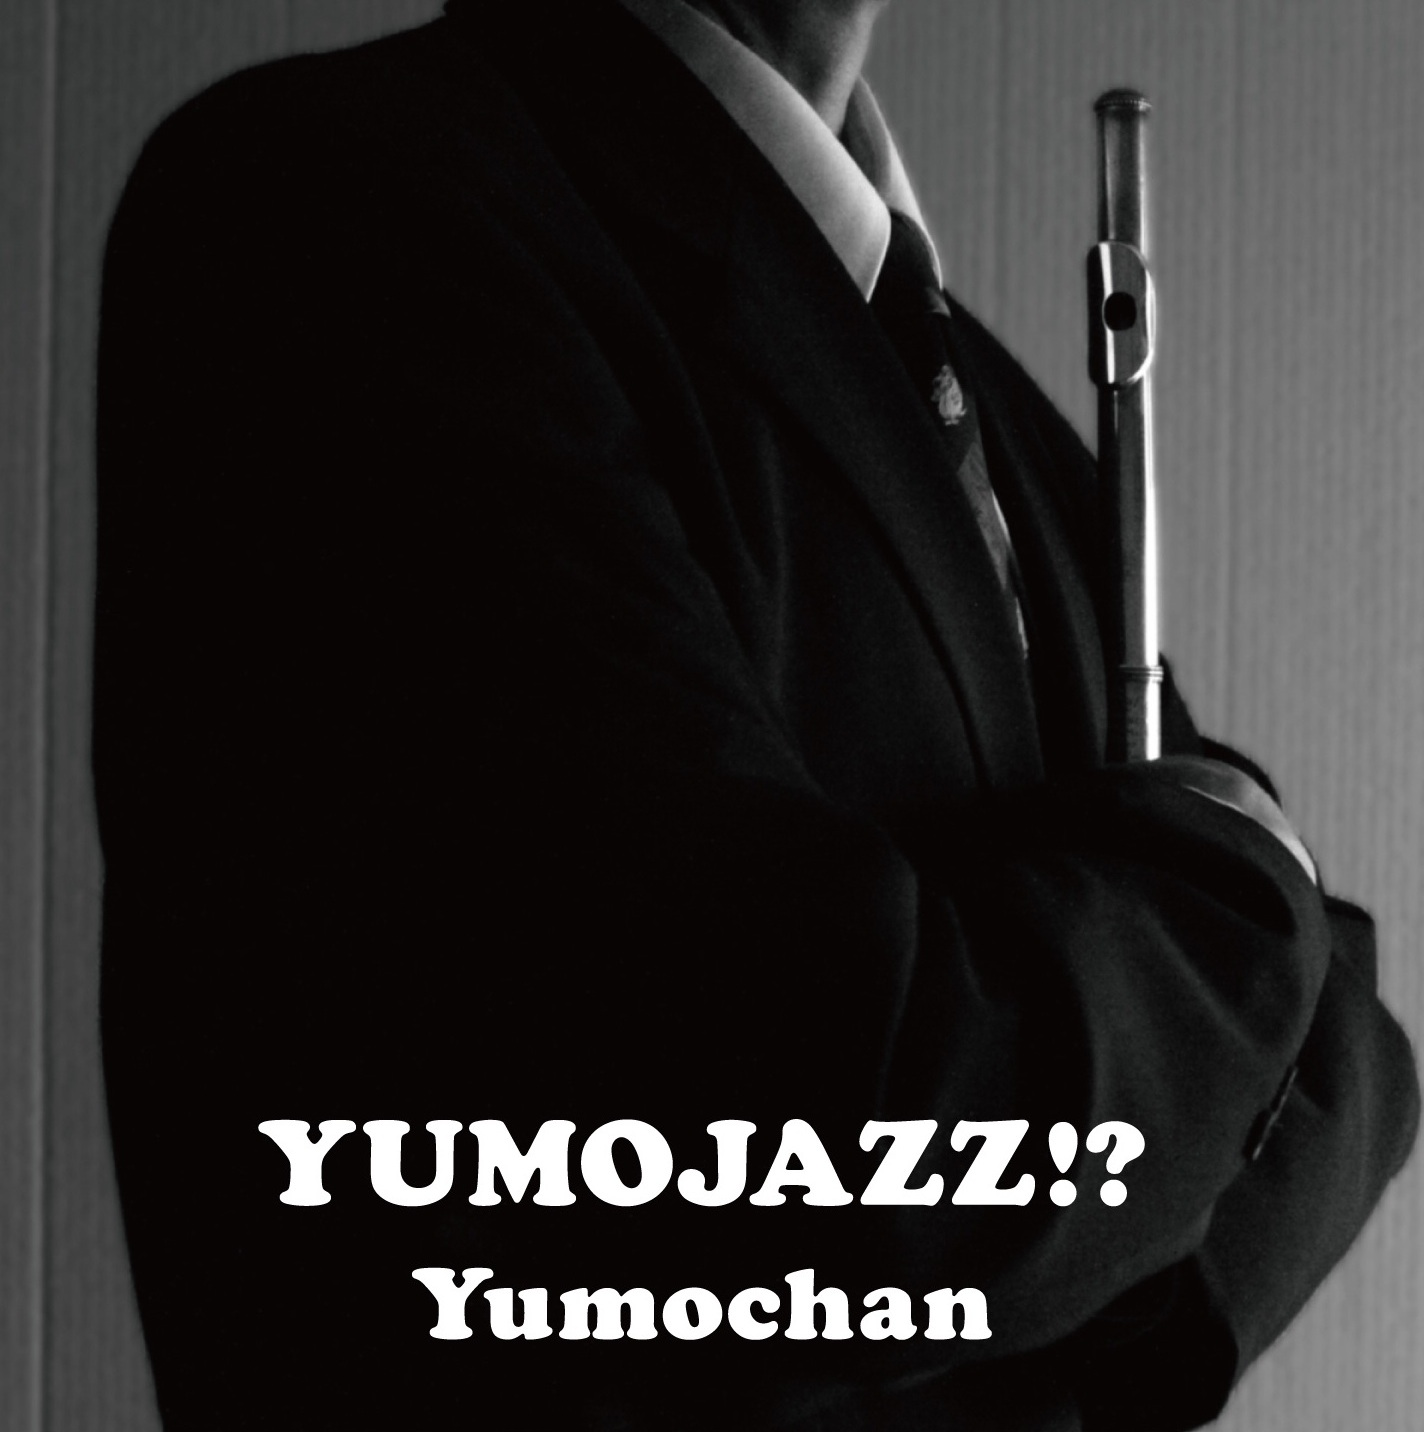 CD_YUMOJAZZ!?-Jacket1